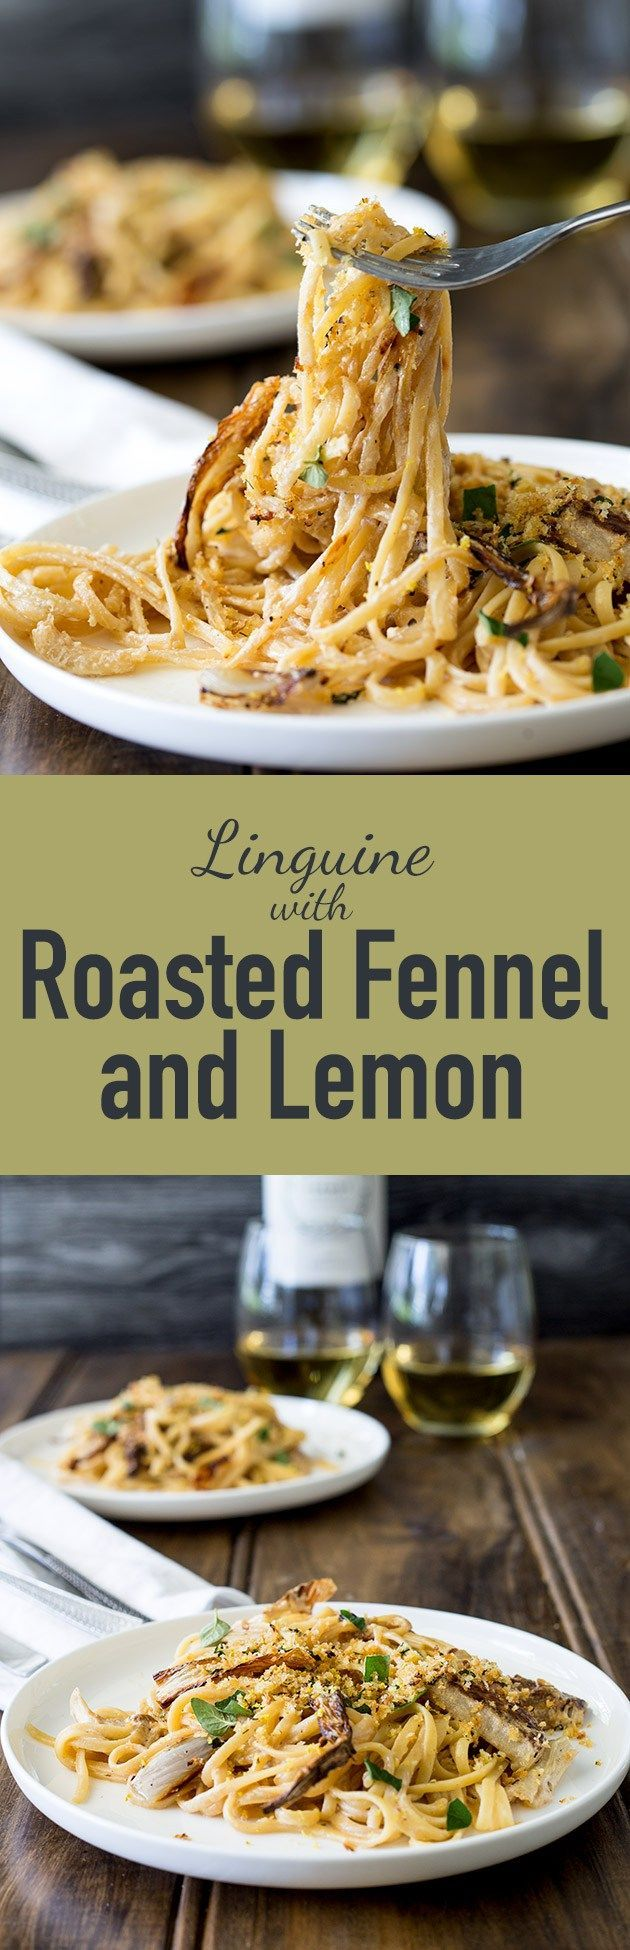 Sweet roasted fennel, paired with a subtle bite of lemon and a salty pangrattao. A great vegetarian pasta dish, perfect for fall.